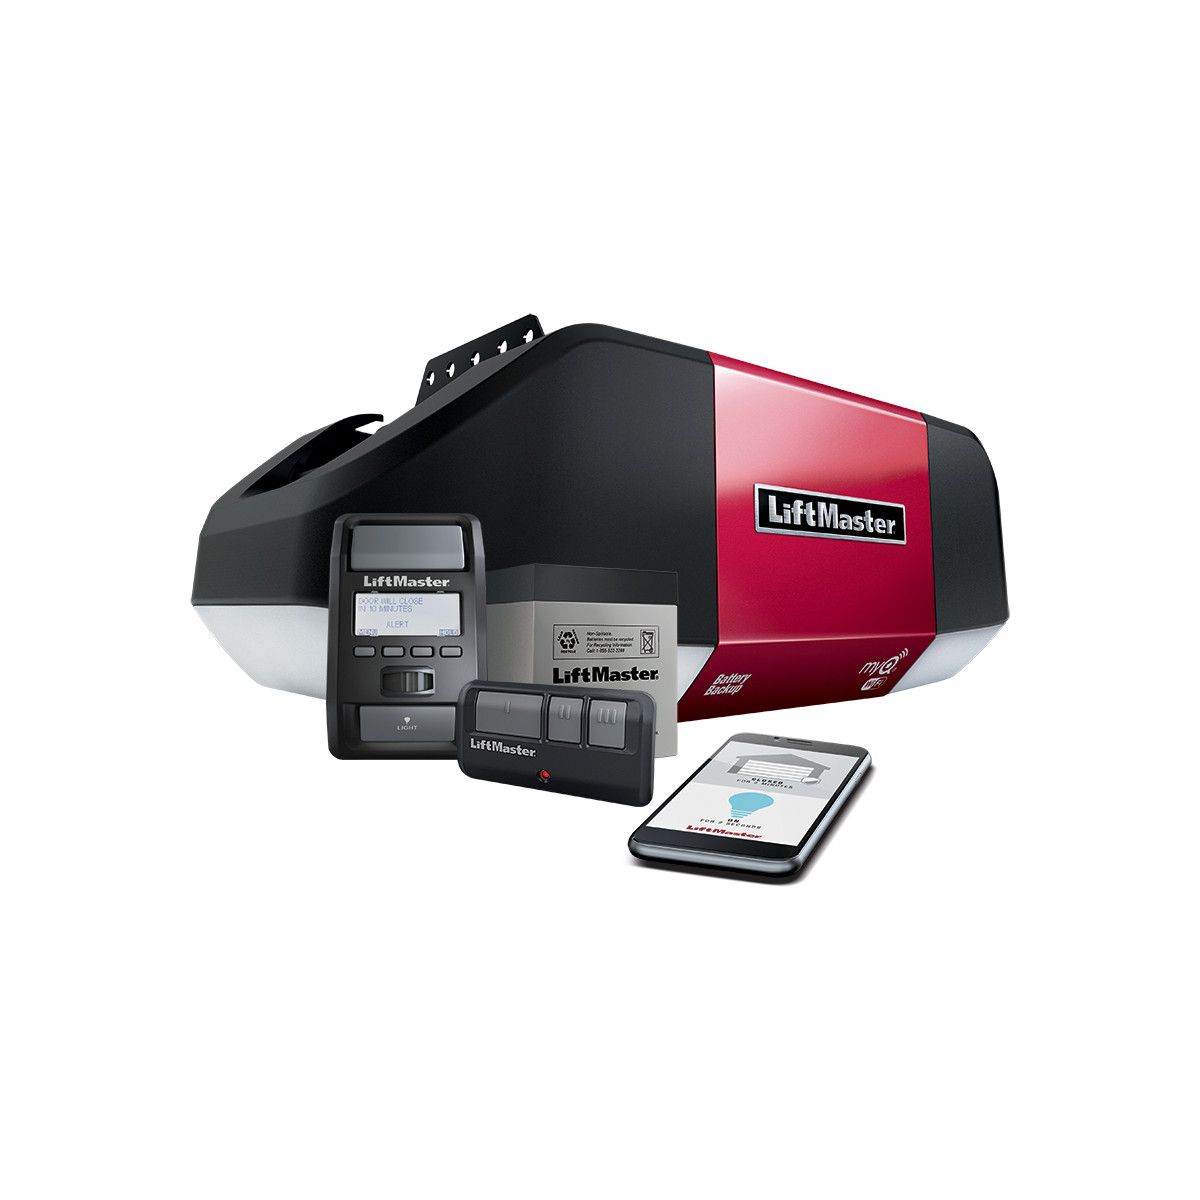 LiftMaster 1345 Replacement Parts | LiftMaster on